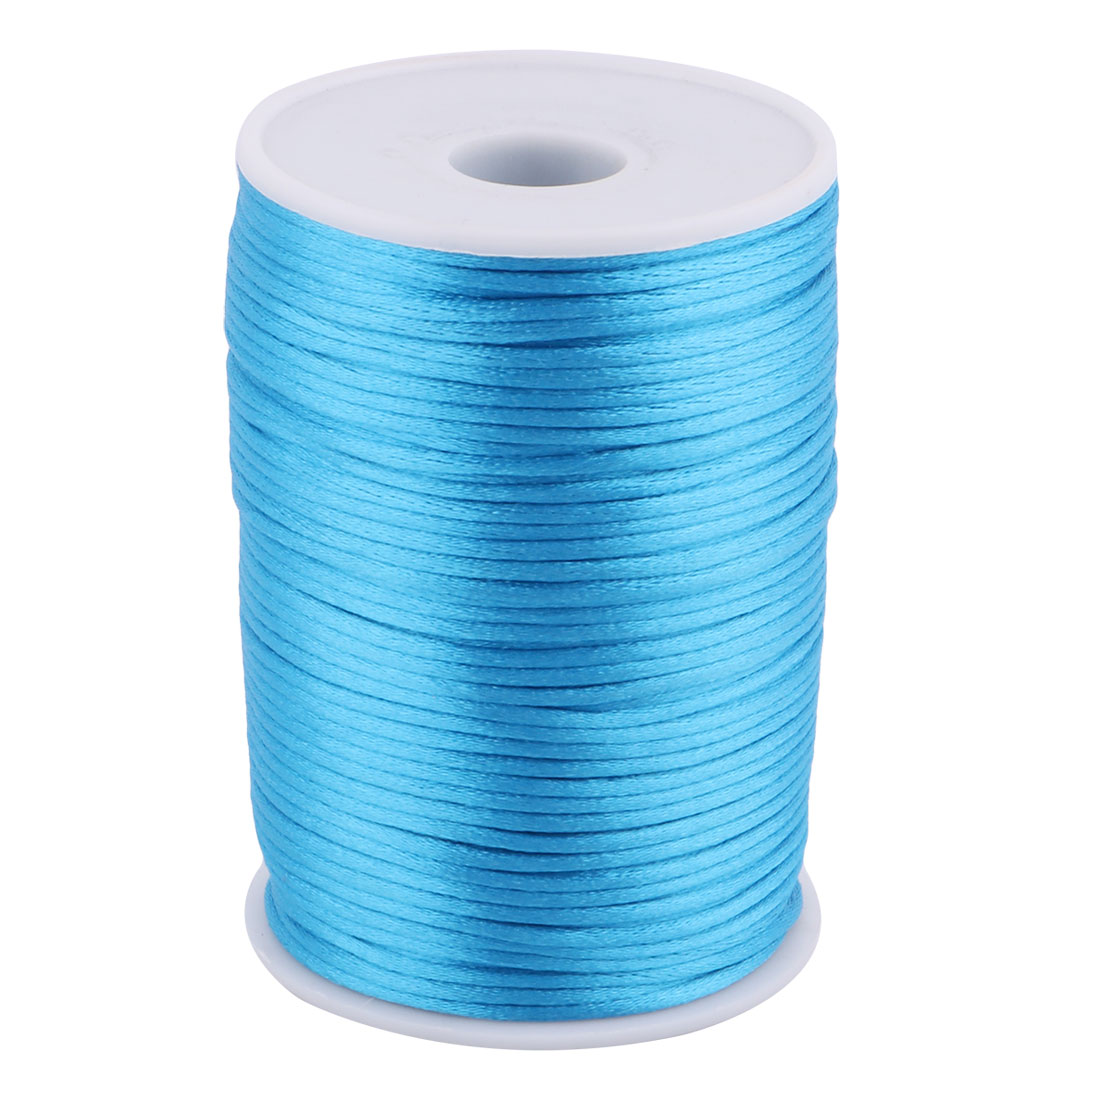 Nylon Chinese Knot Necklace Crafts DIY Braided Cord Blue 2.5mm Dia 109 Yards